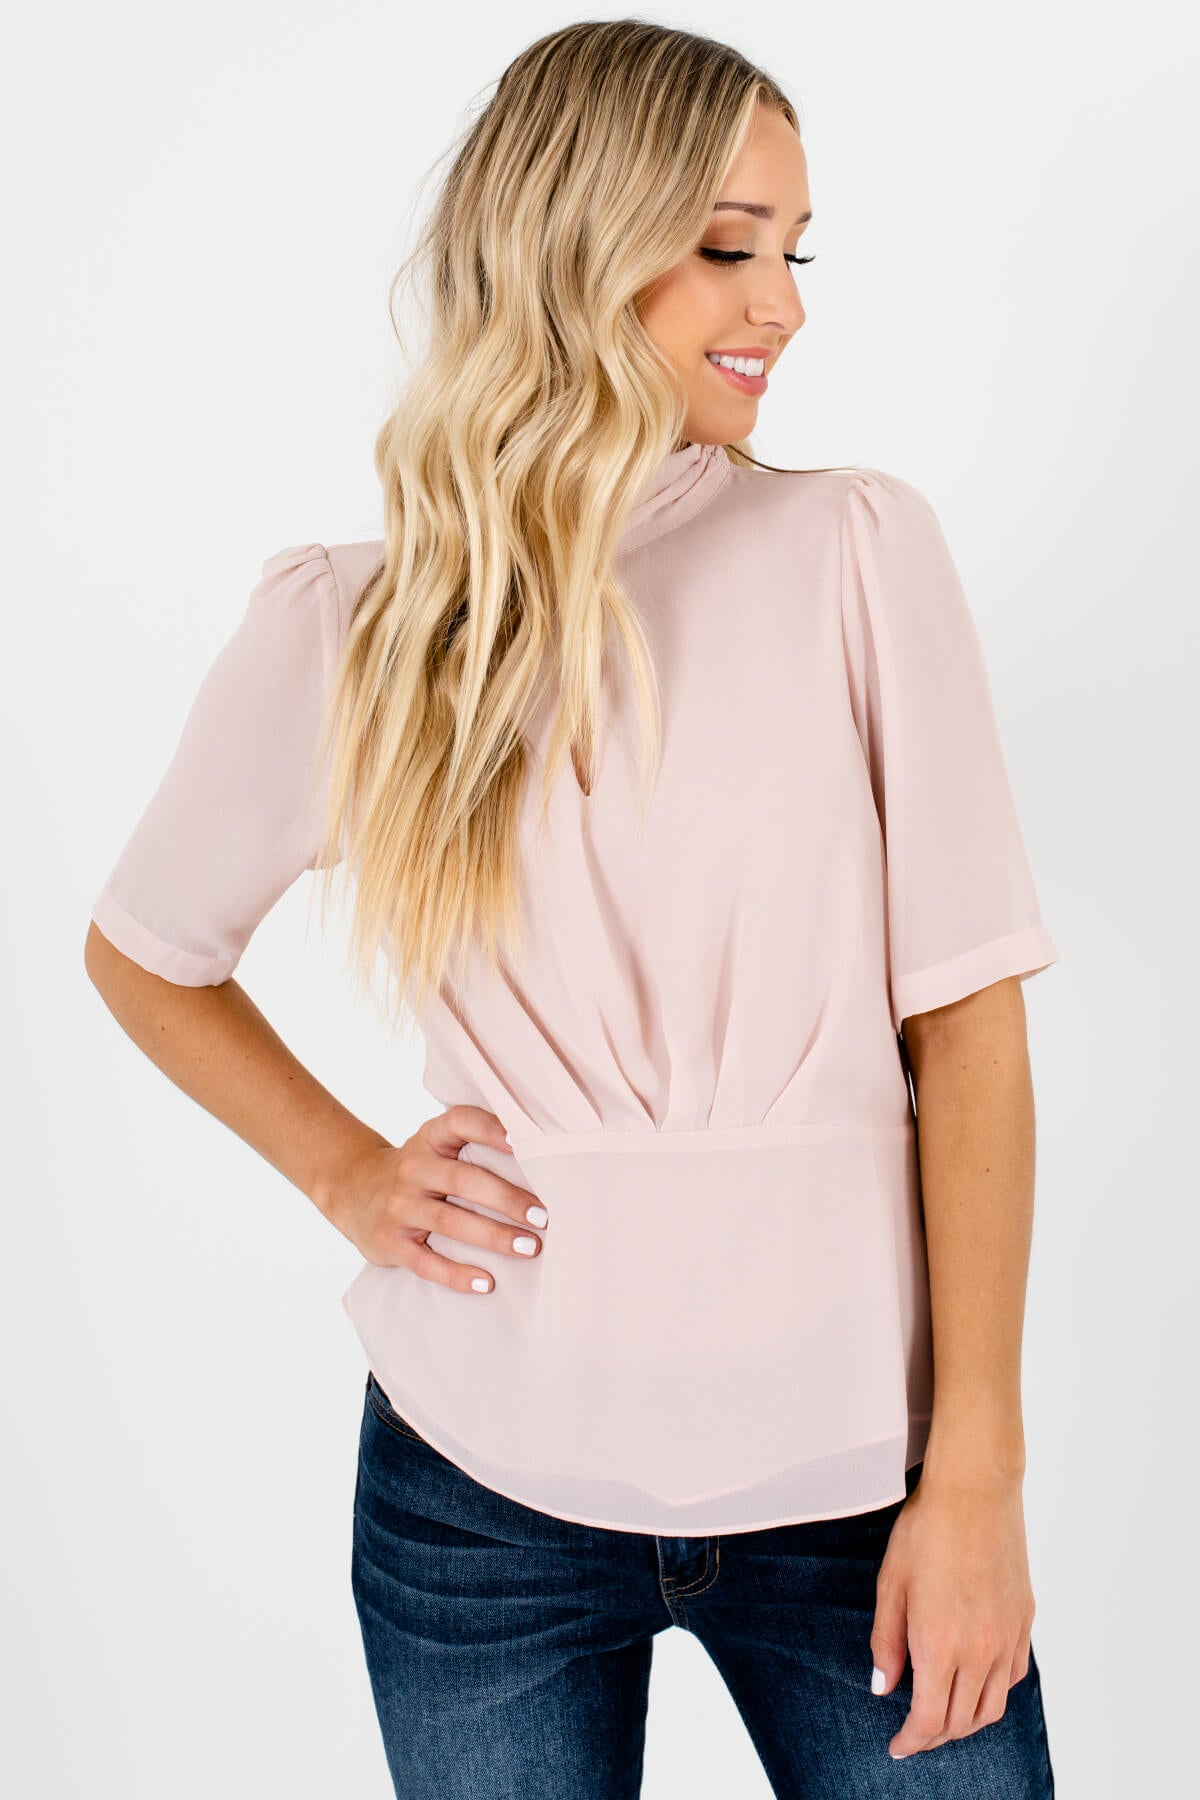 Blush Pink Neckline Cutout Detail Boutique Blouses for Women